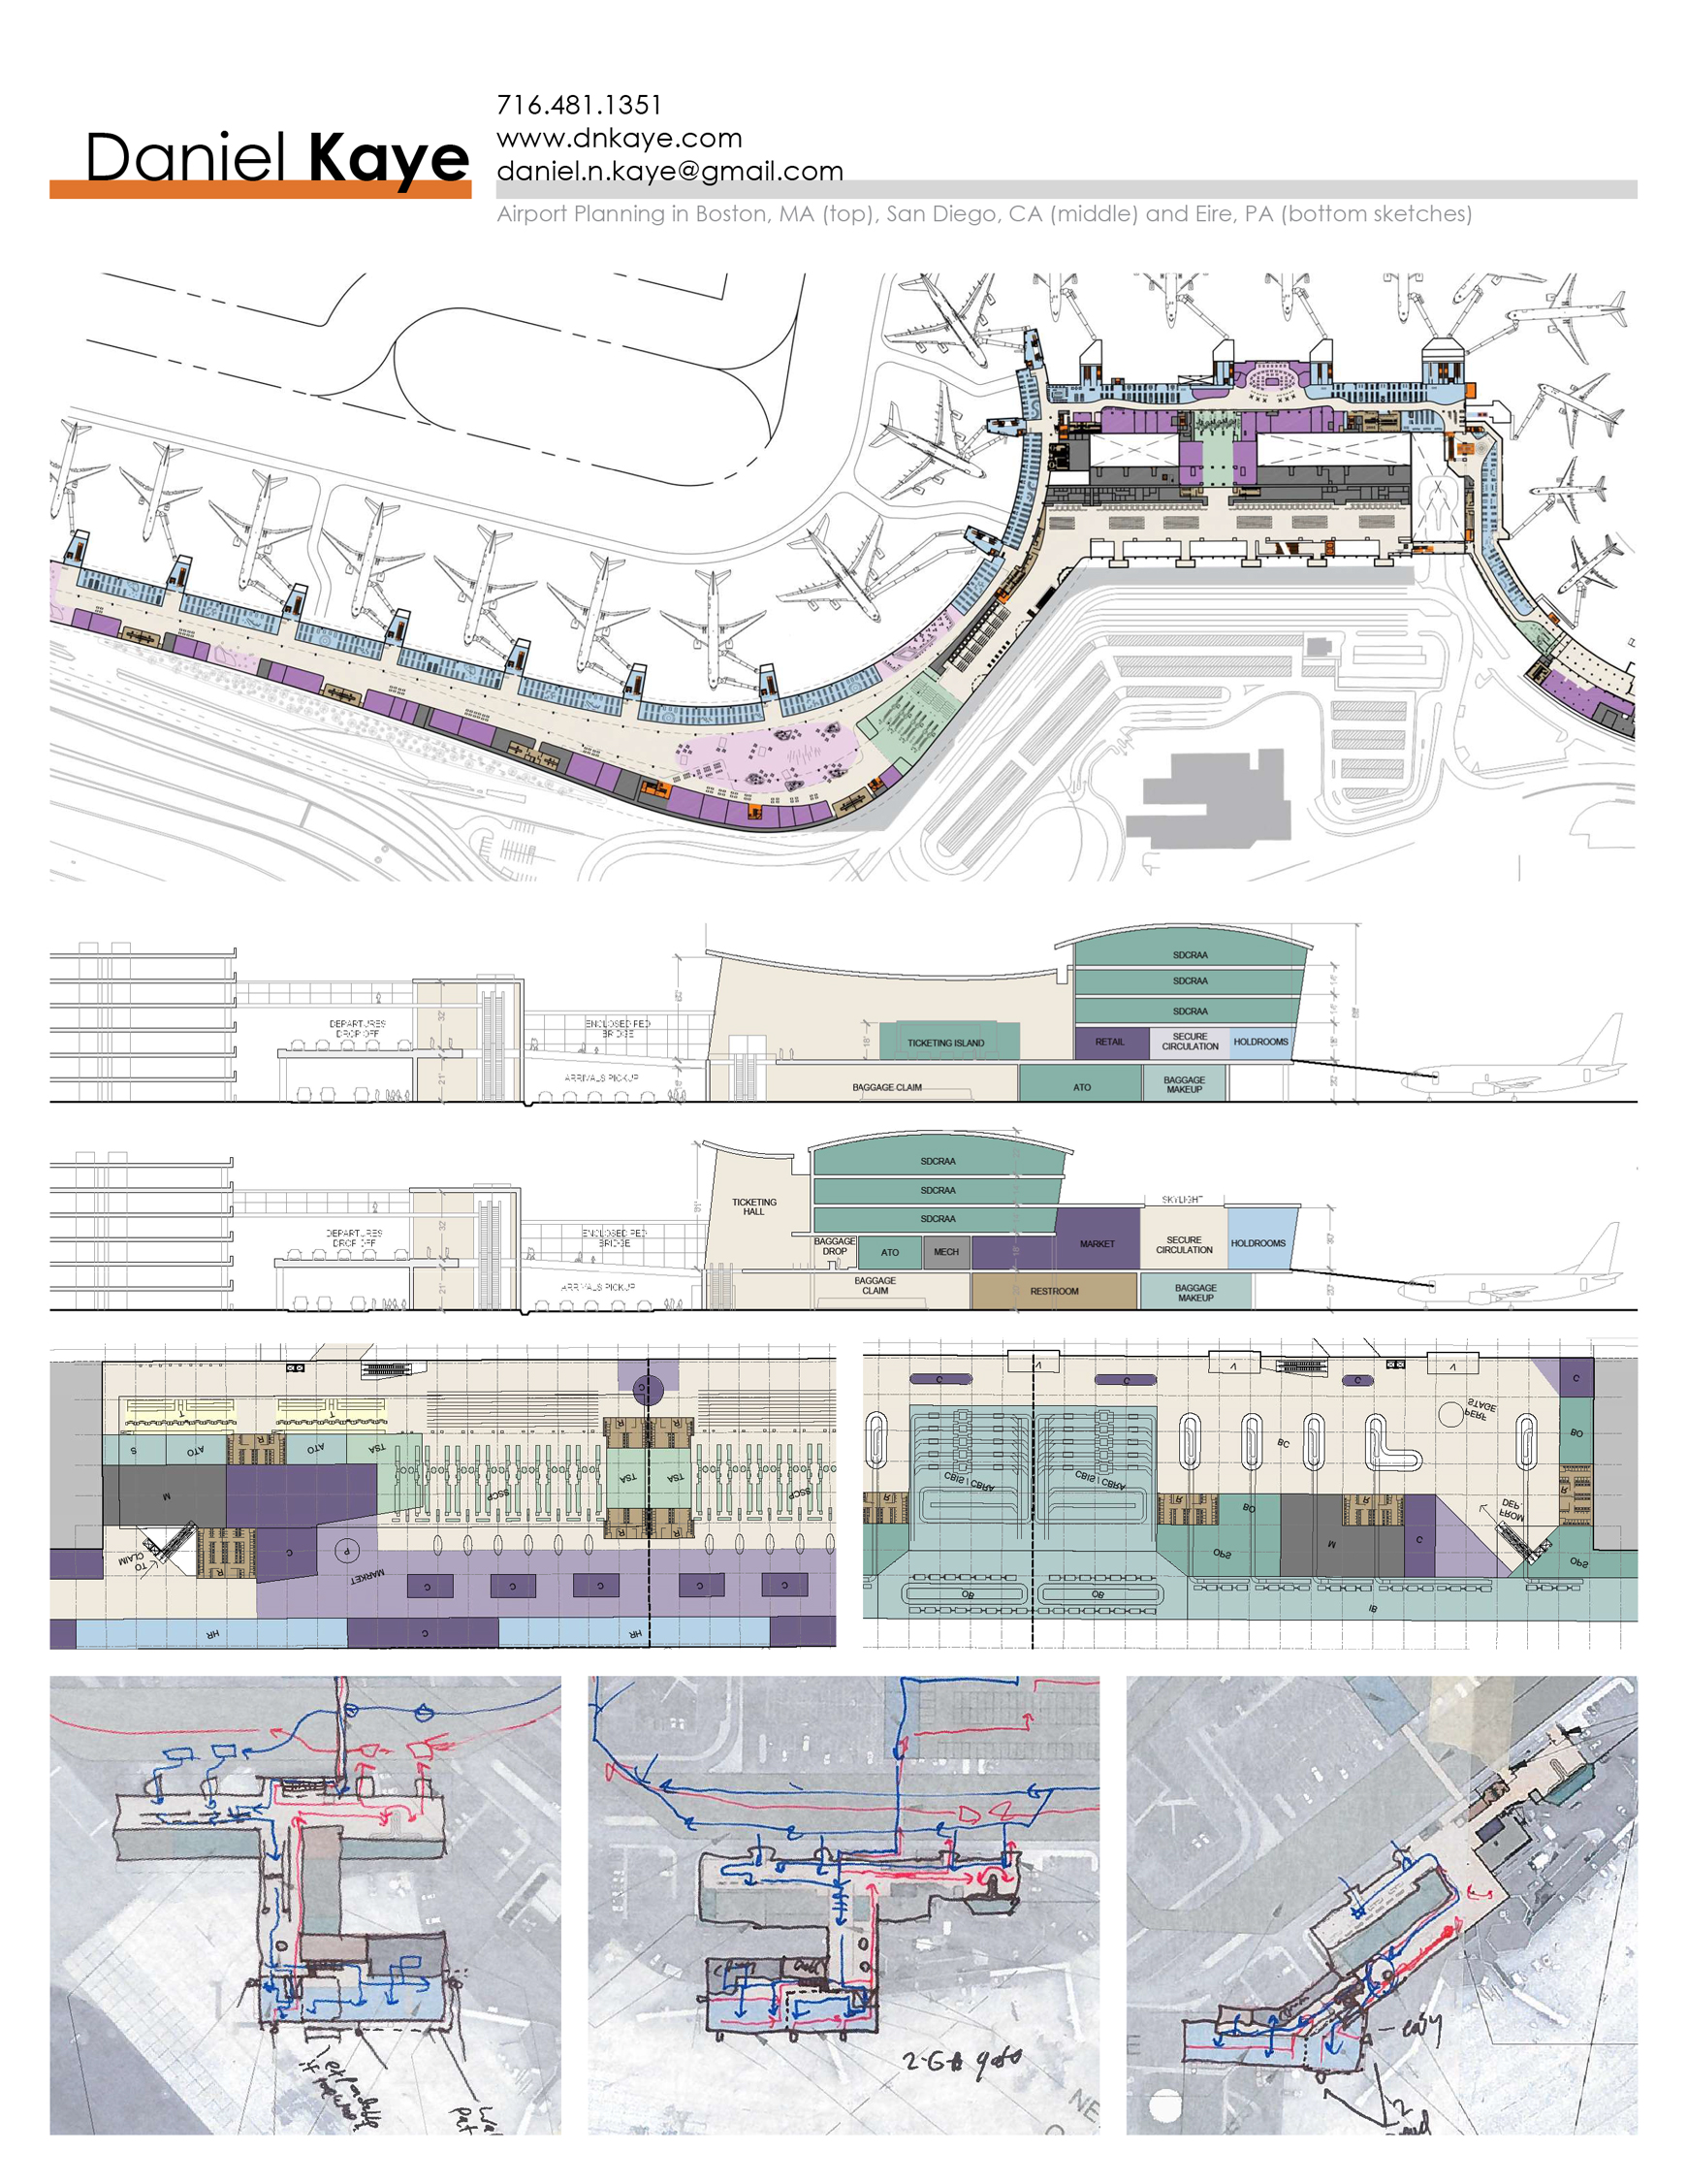 Daniel Kaye Sample Page - Airport Planning